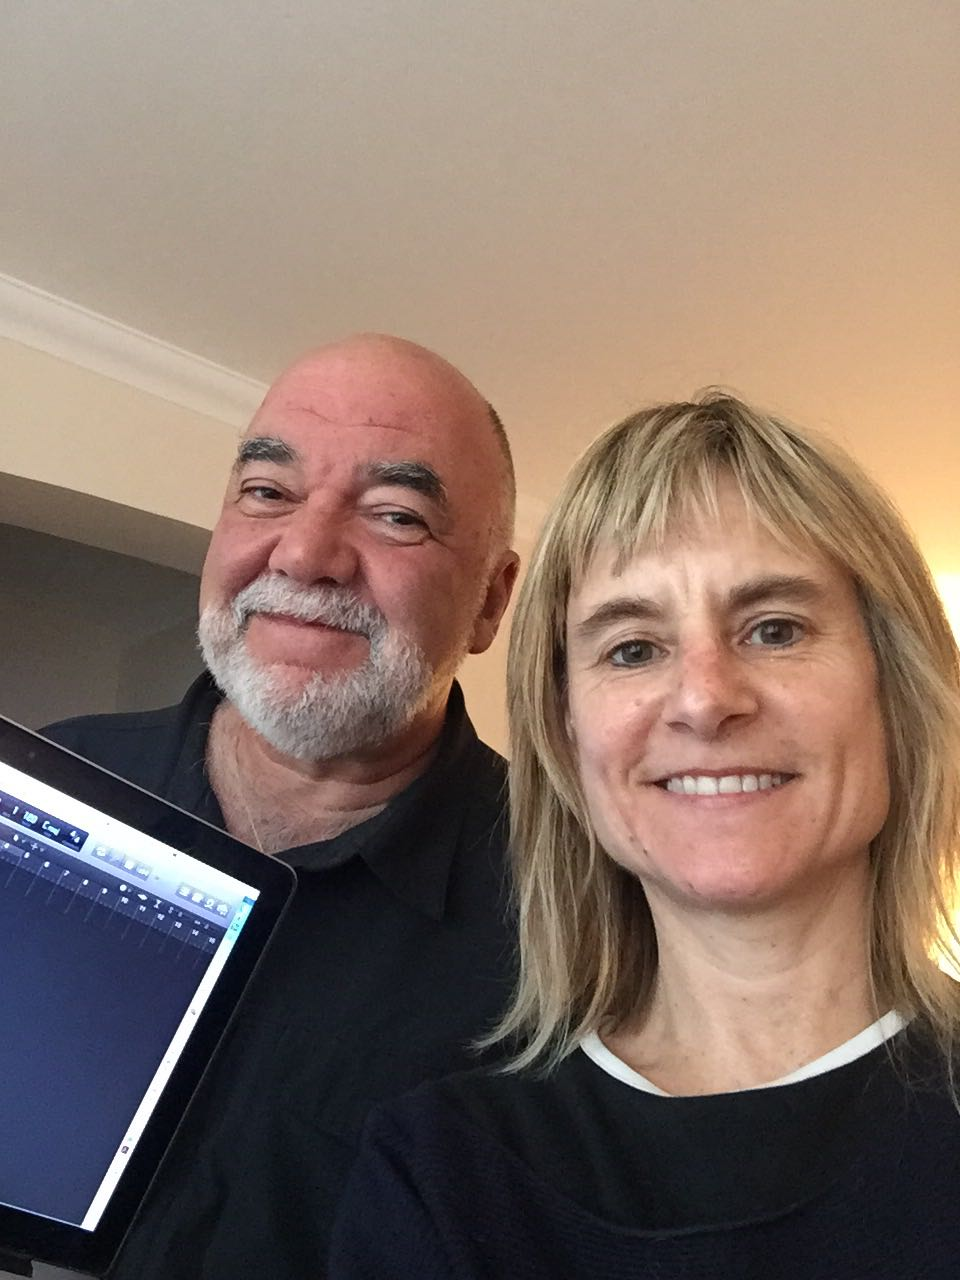 JLR Interview Series: Peter Erskine